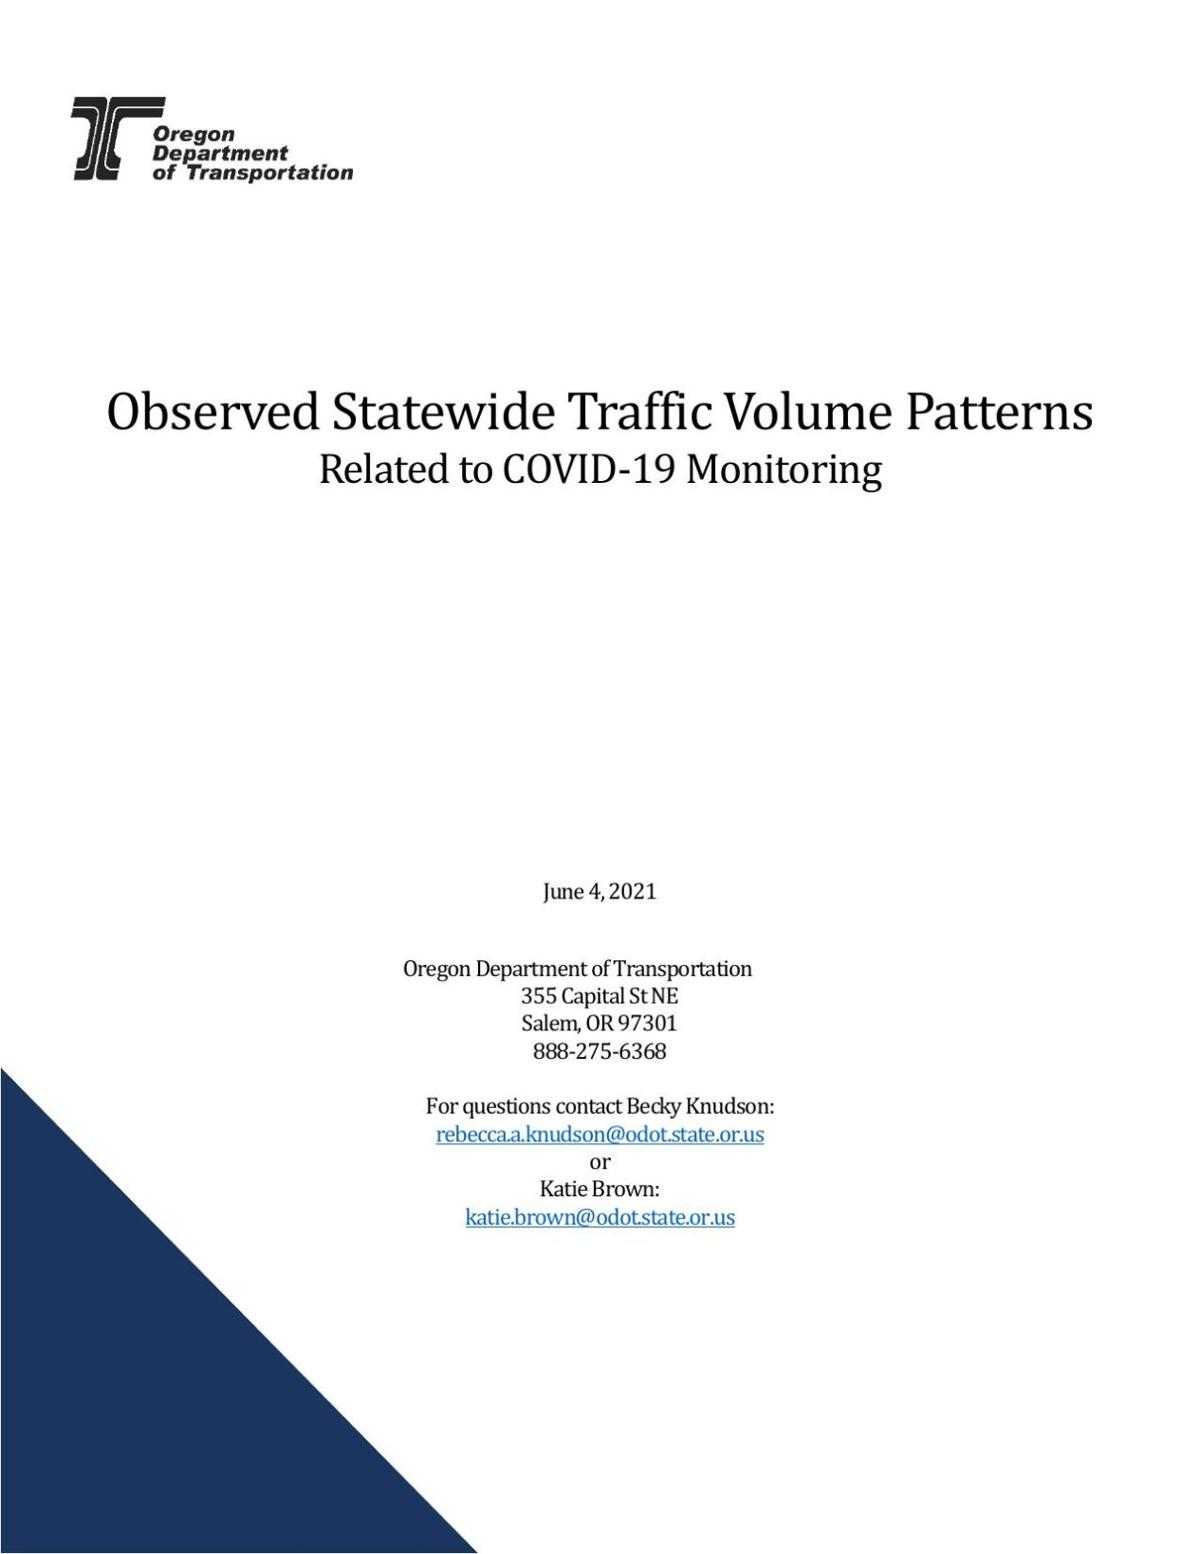 ODOT Statewide Traffic Volume Report